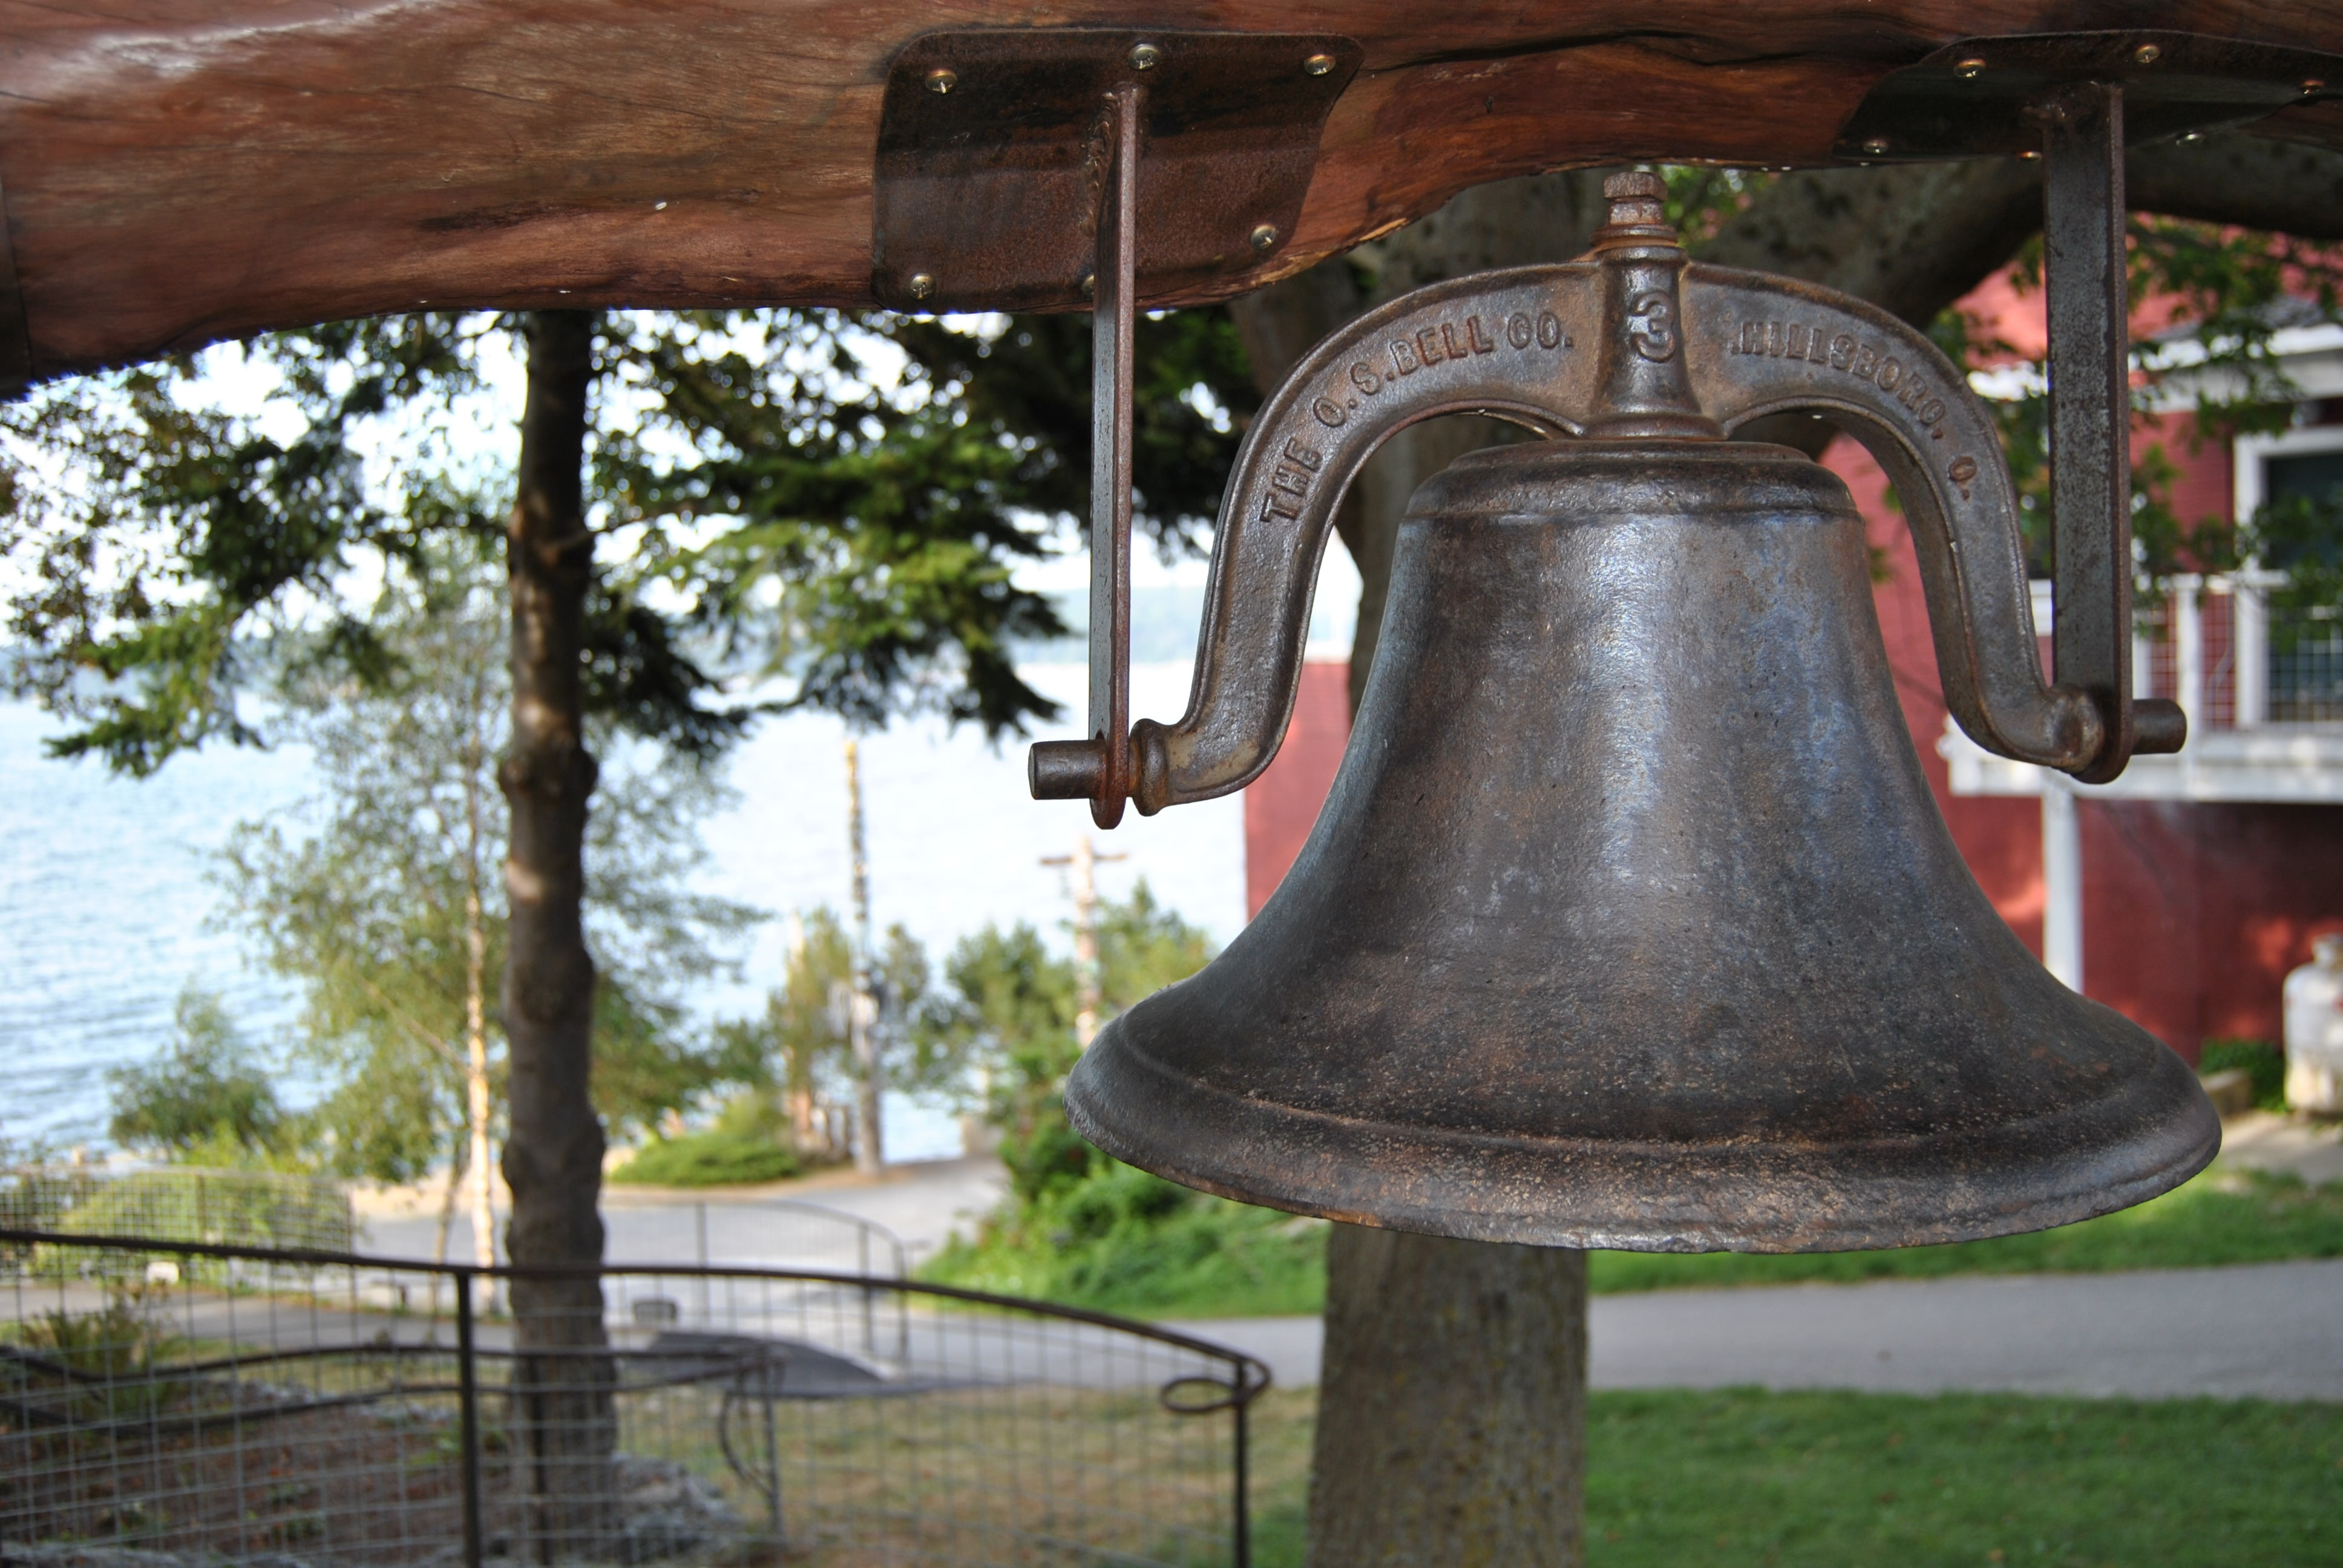 A large bell hangs from a wooden support in a park in Langley.